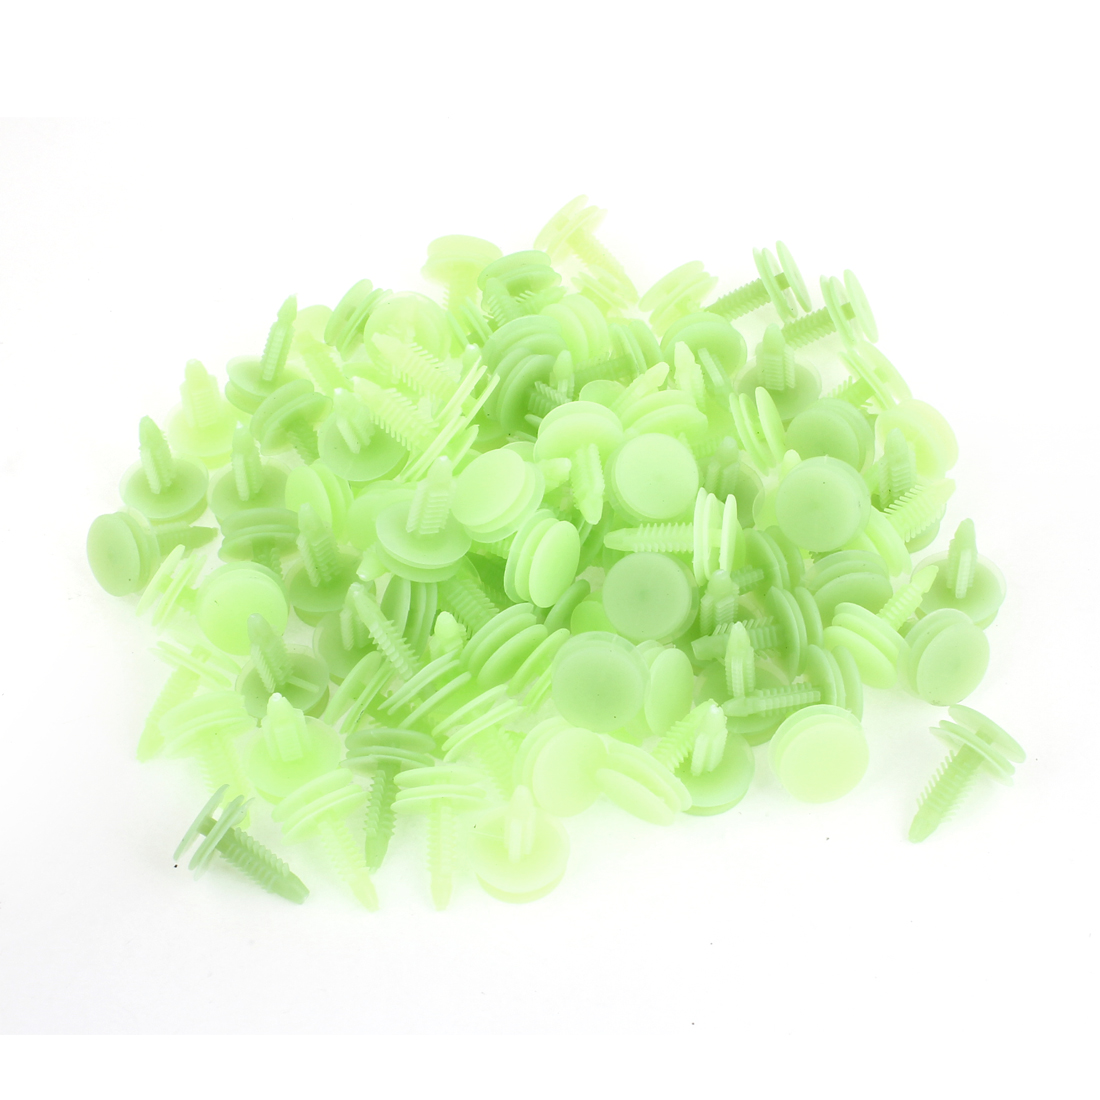 Auto Car Green 8mm Hole Door Fender Plastic Rivets Screw Fasteners 100pcs